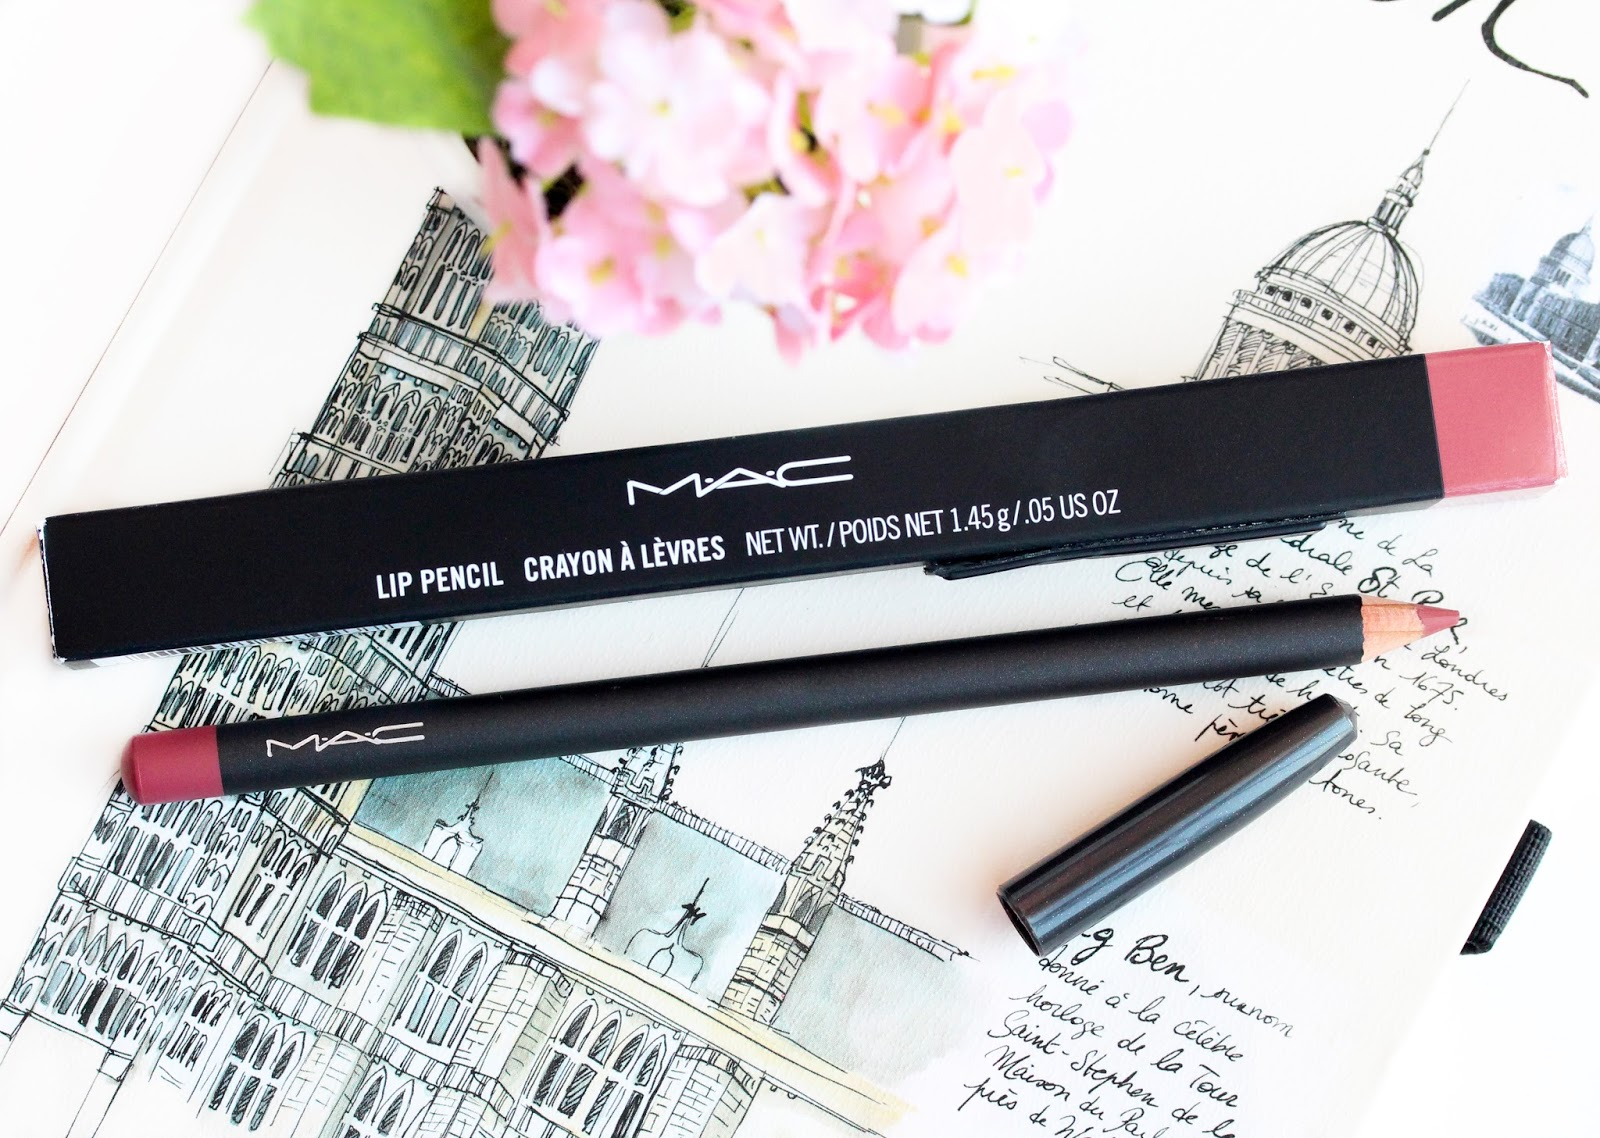 The Kylie Jenner Lip MAC Soar